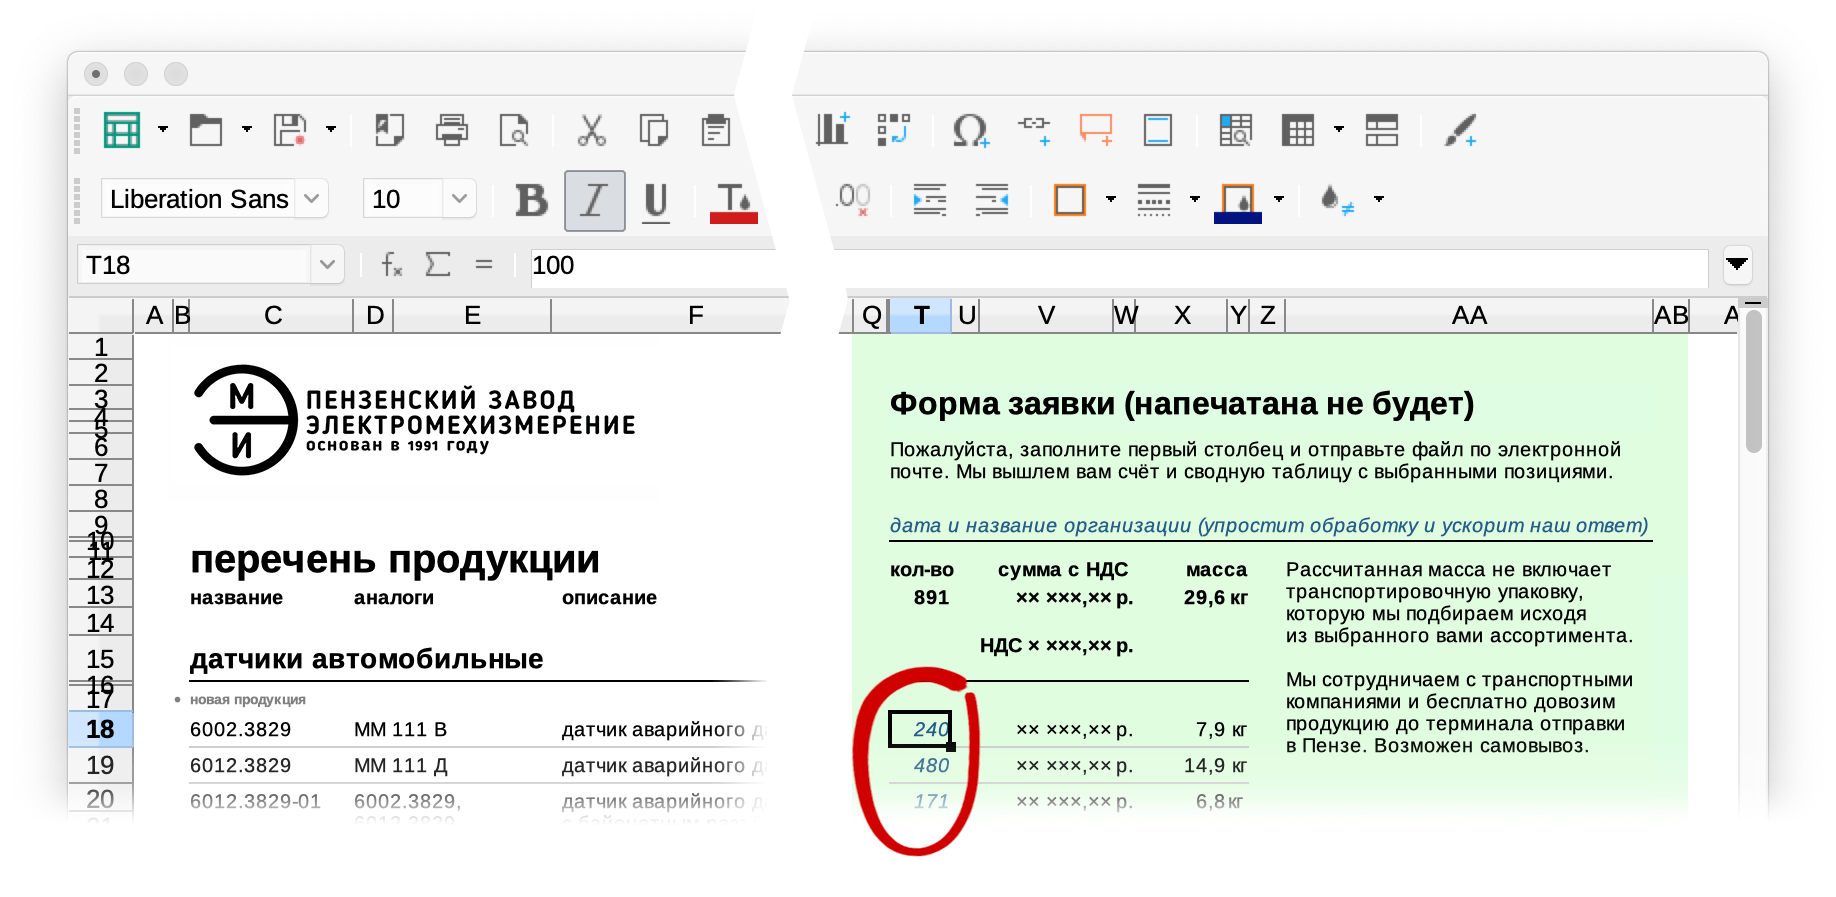 Order application form opened in LibreOffice